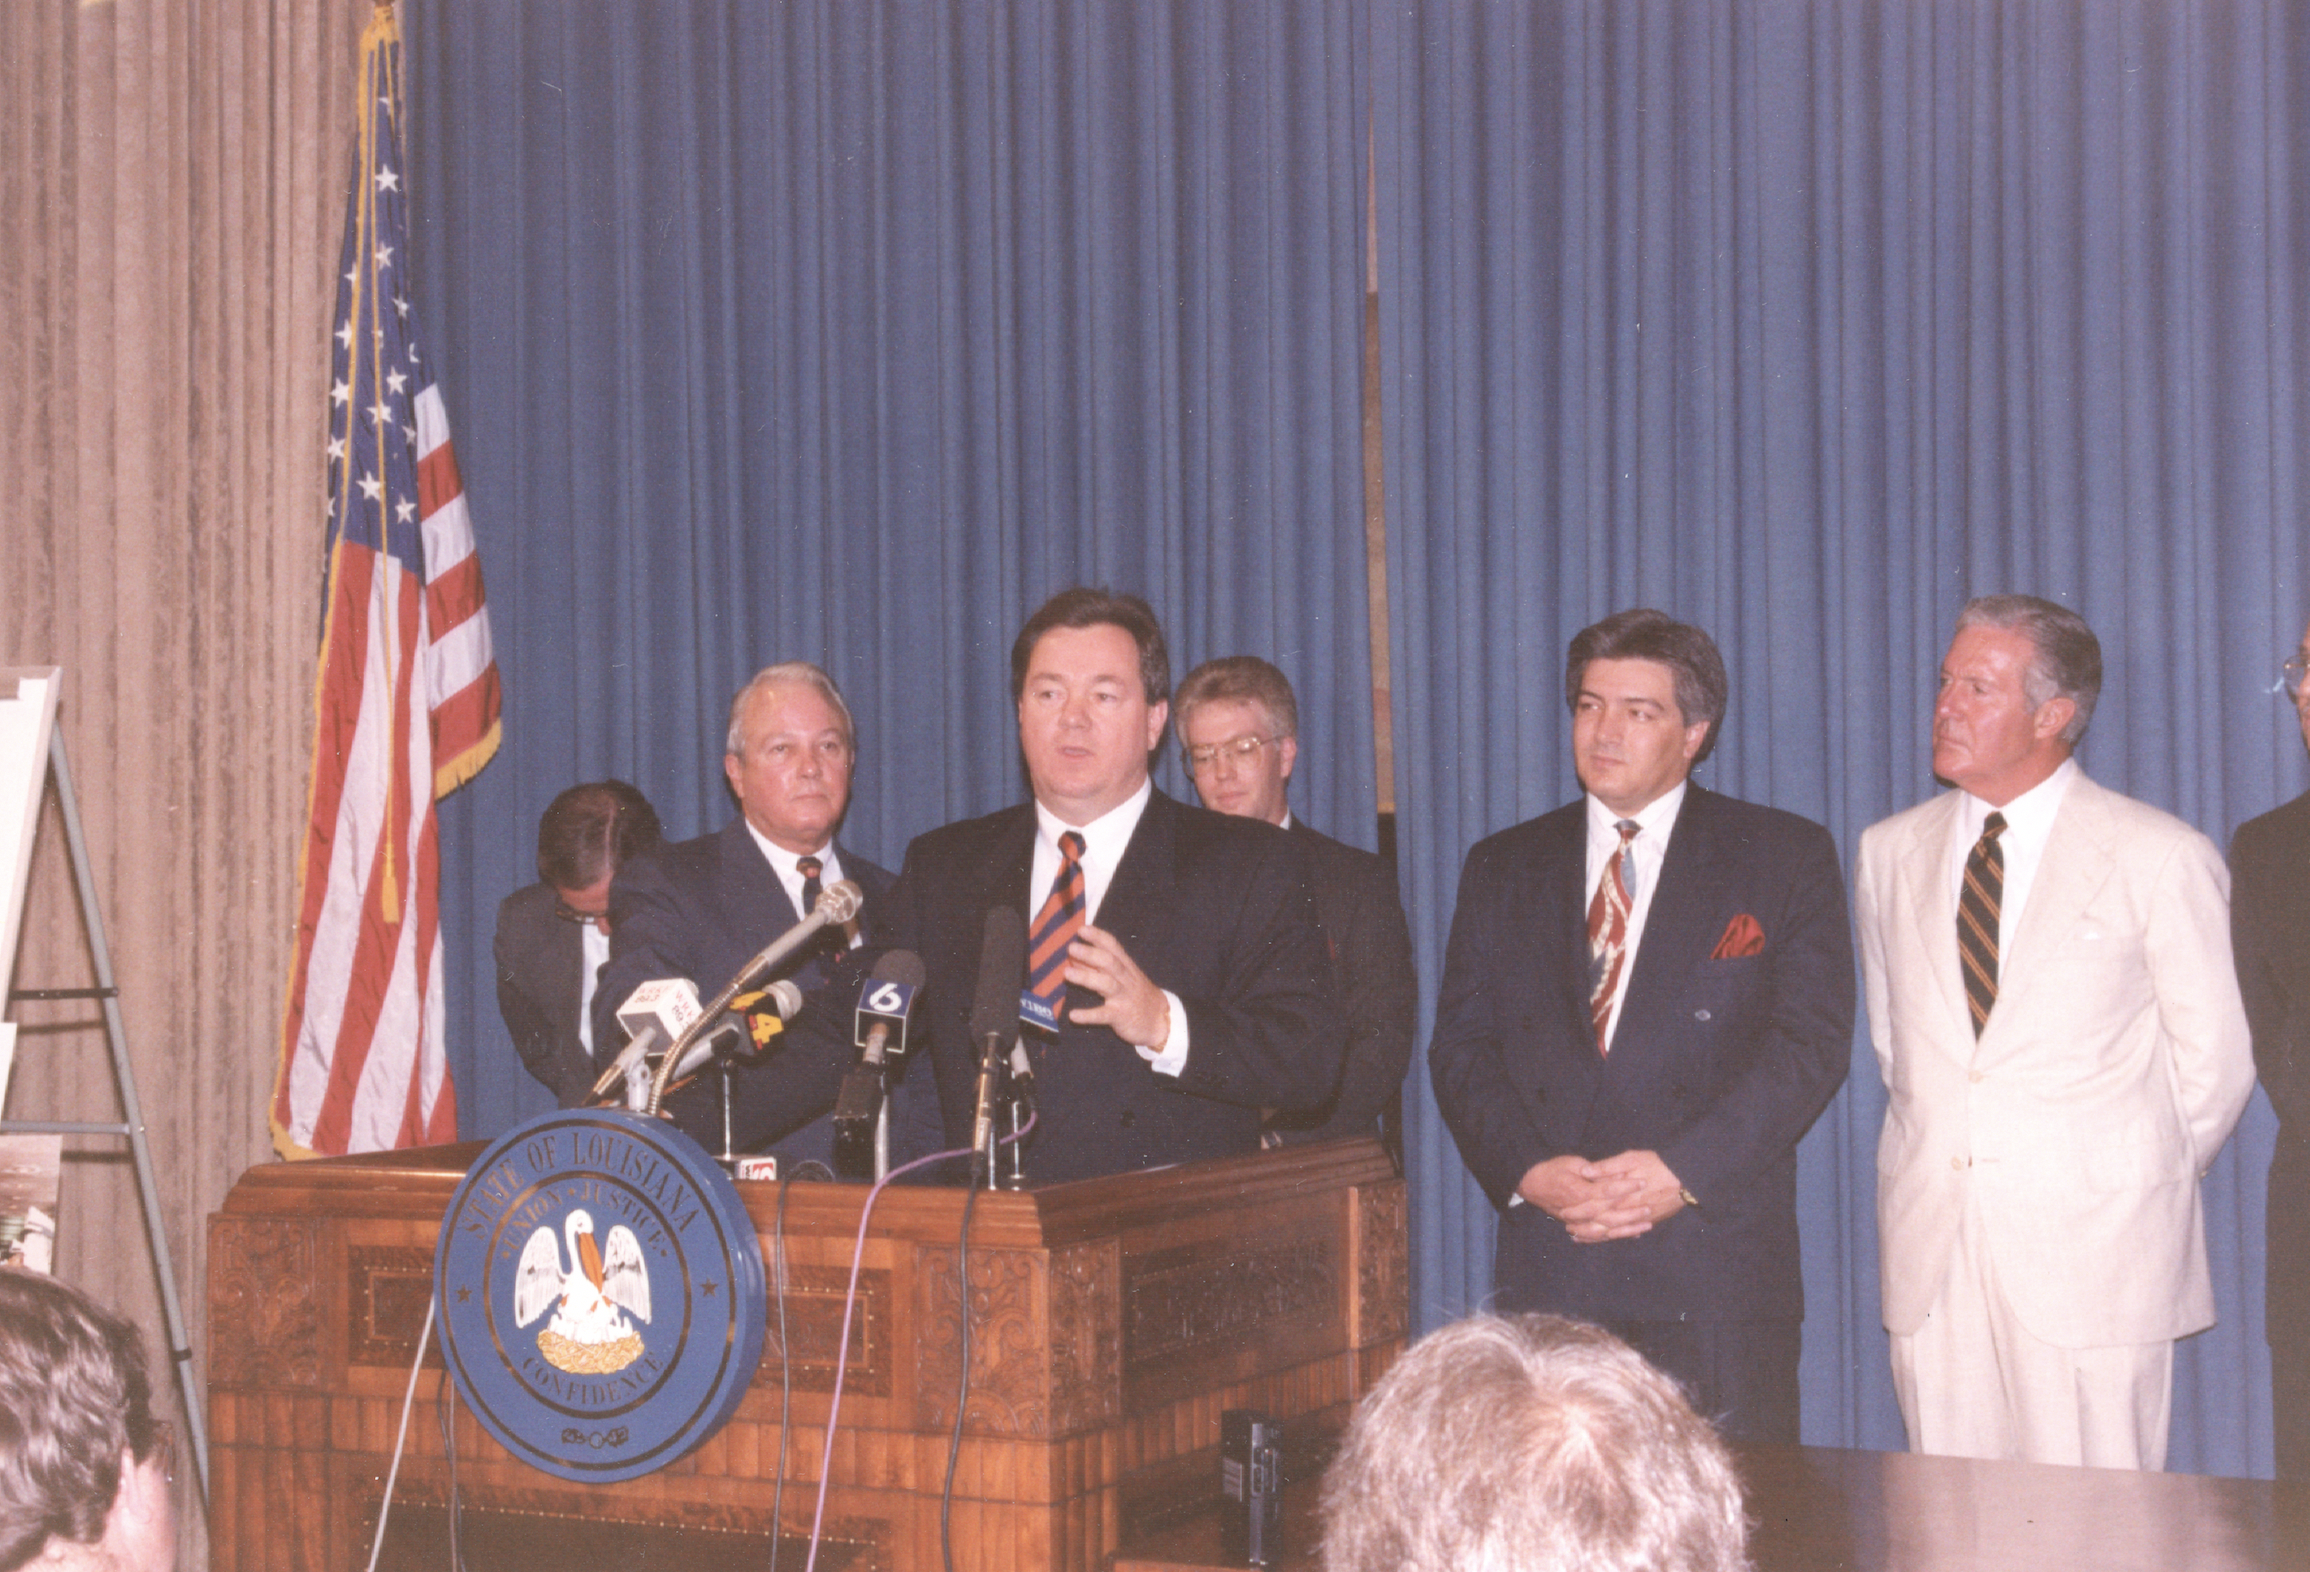 Robert Bobby Adams Governor Press Conference